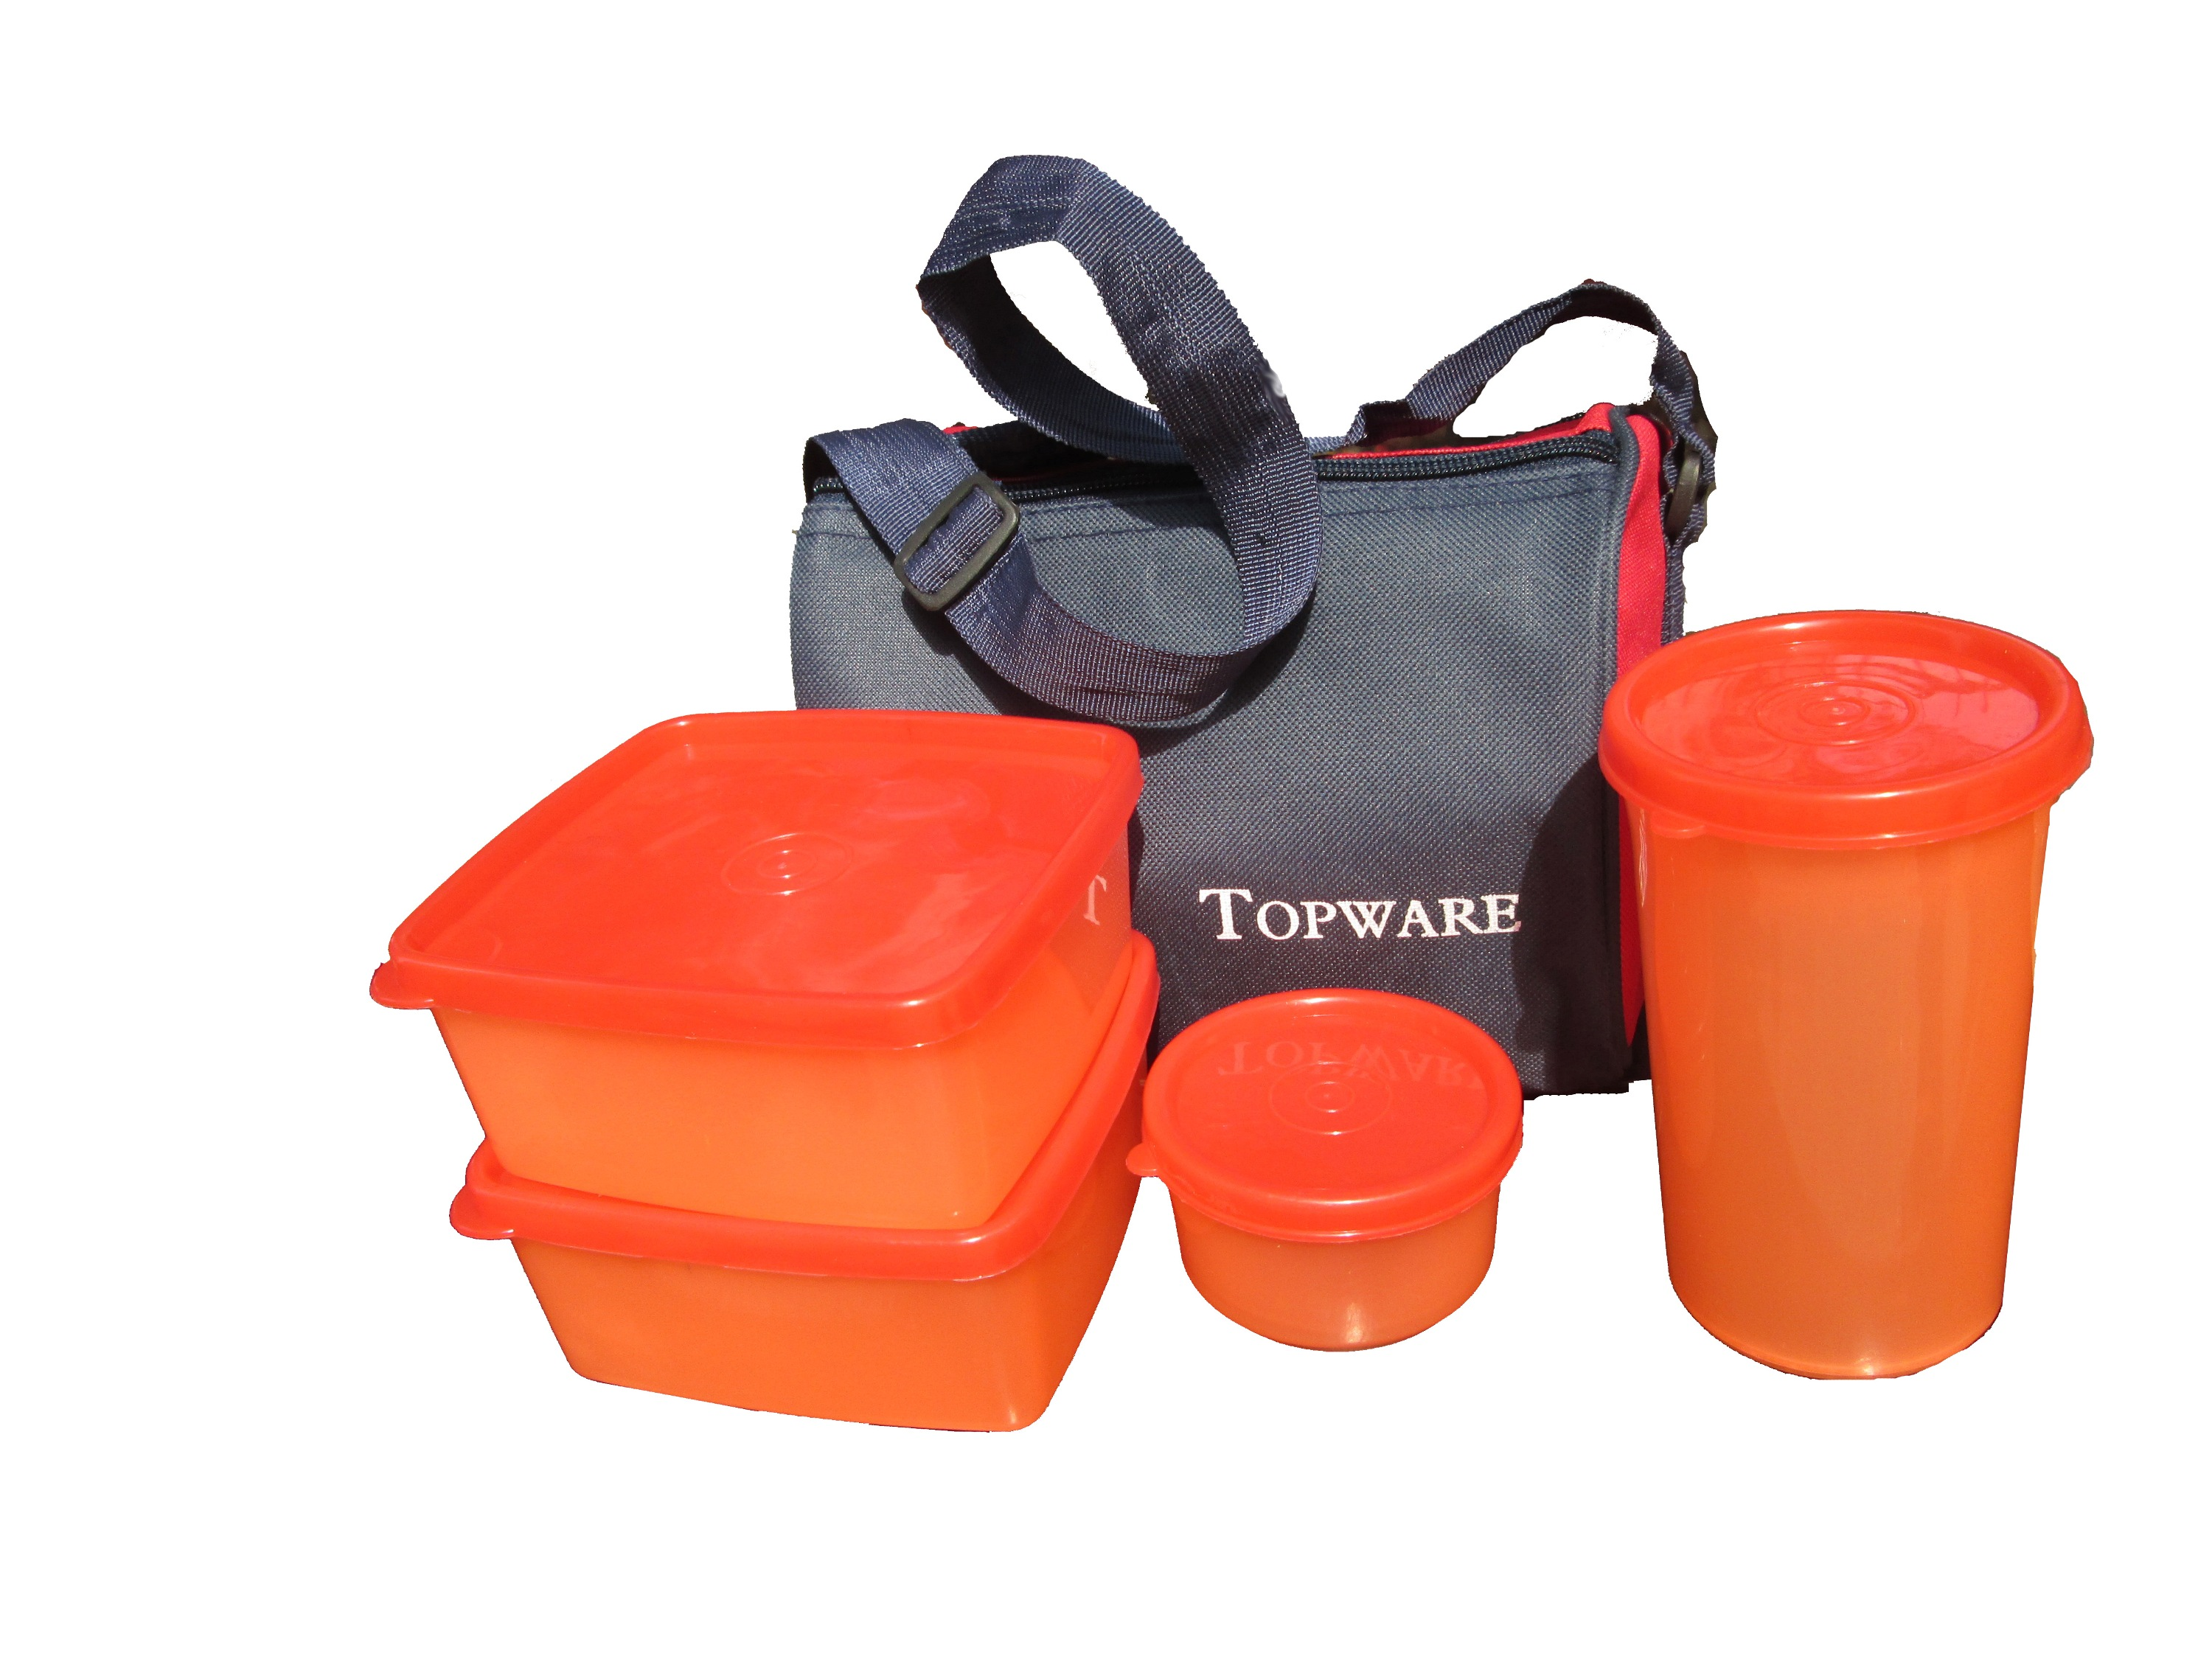 marketing categories lunch boxes special kitchen